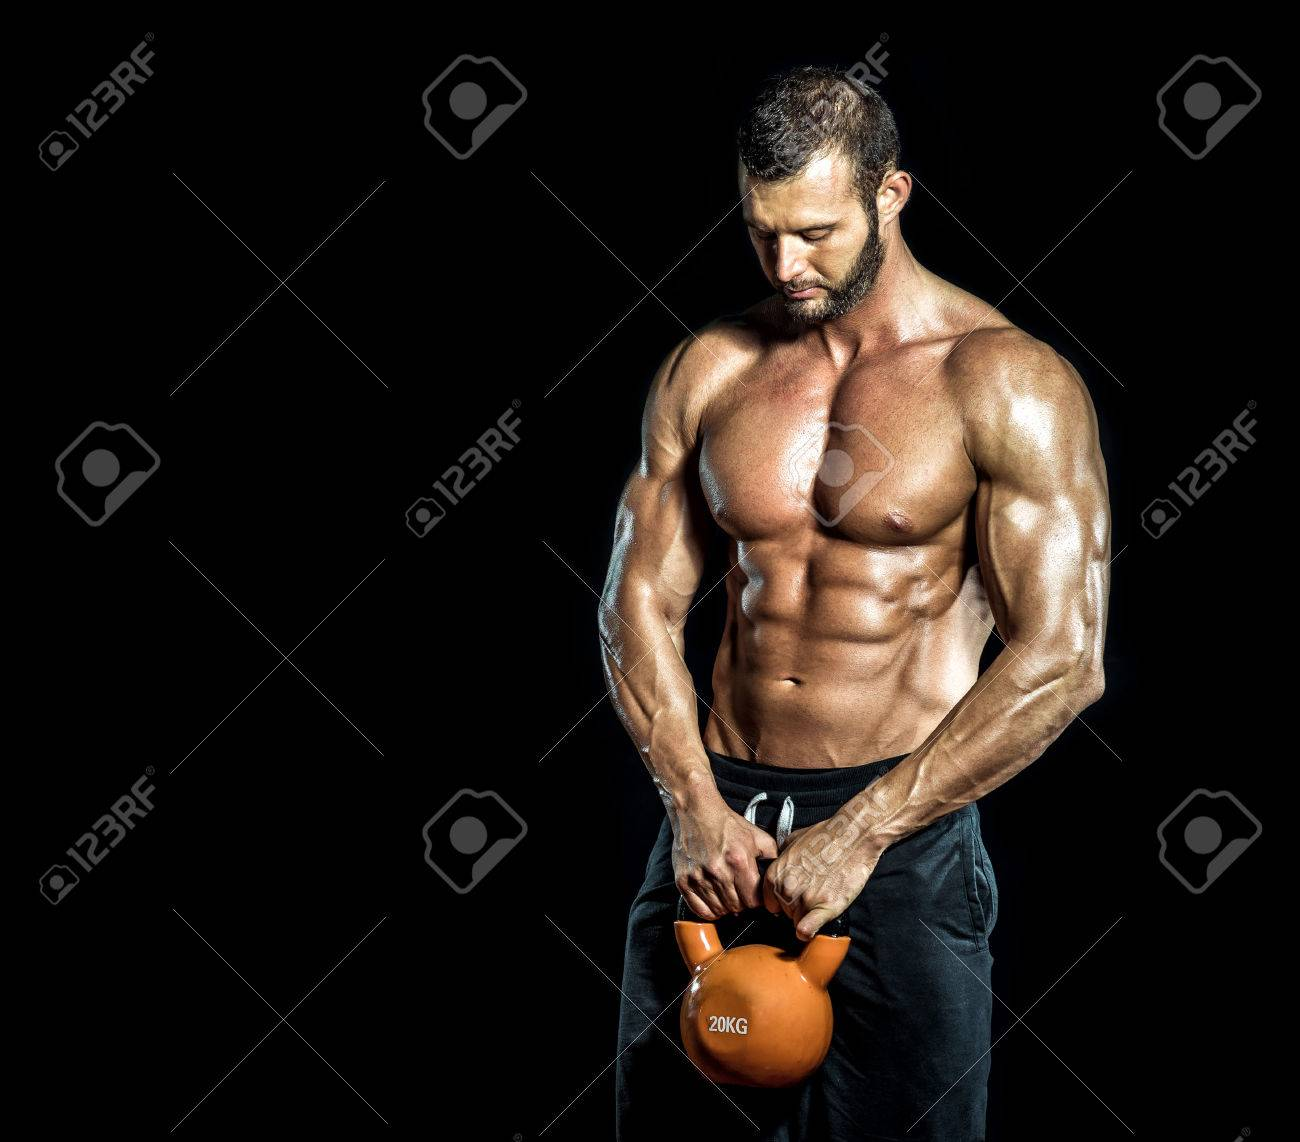 Kettlebell Bodybuilding Handsome Bodybuilder Standing With Kettlebell In Hands Isolated